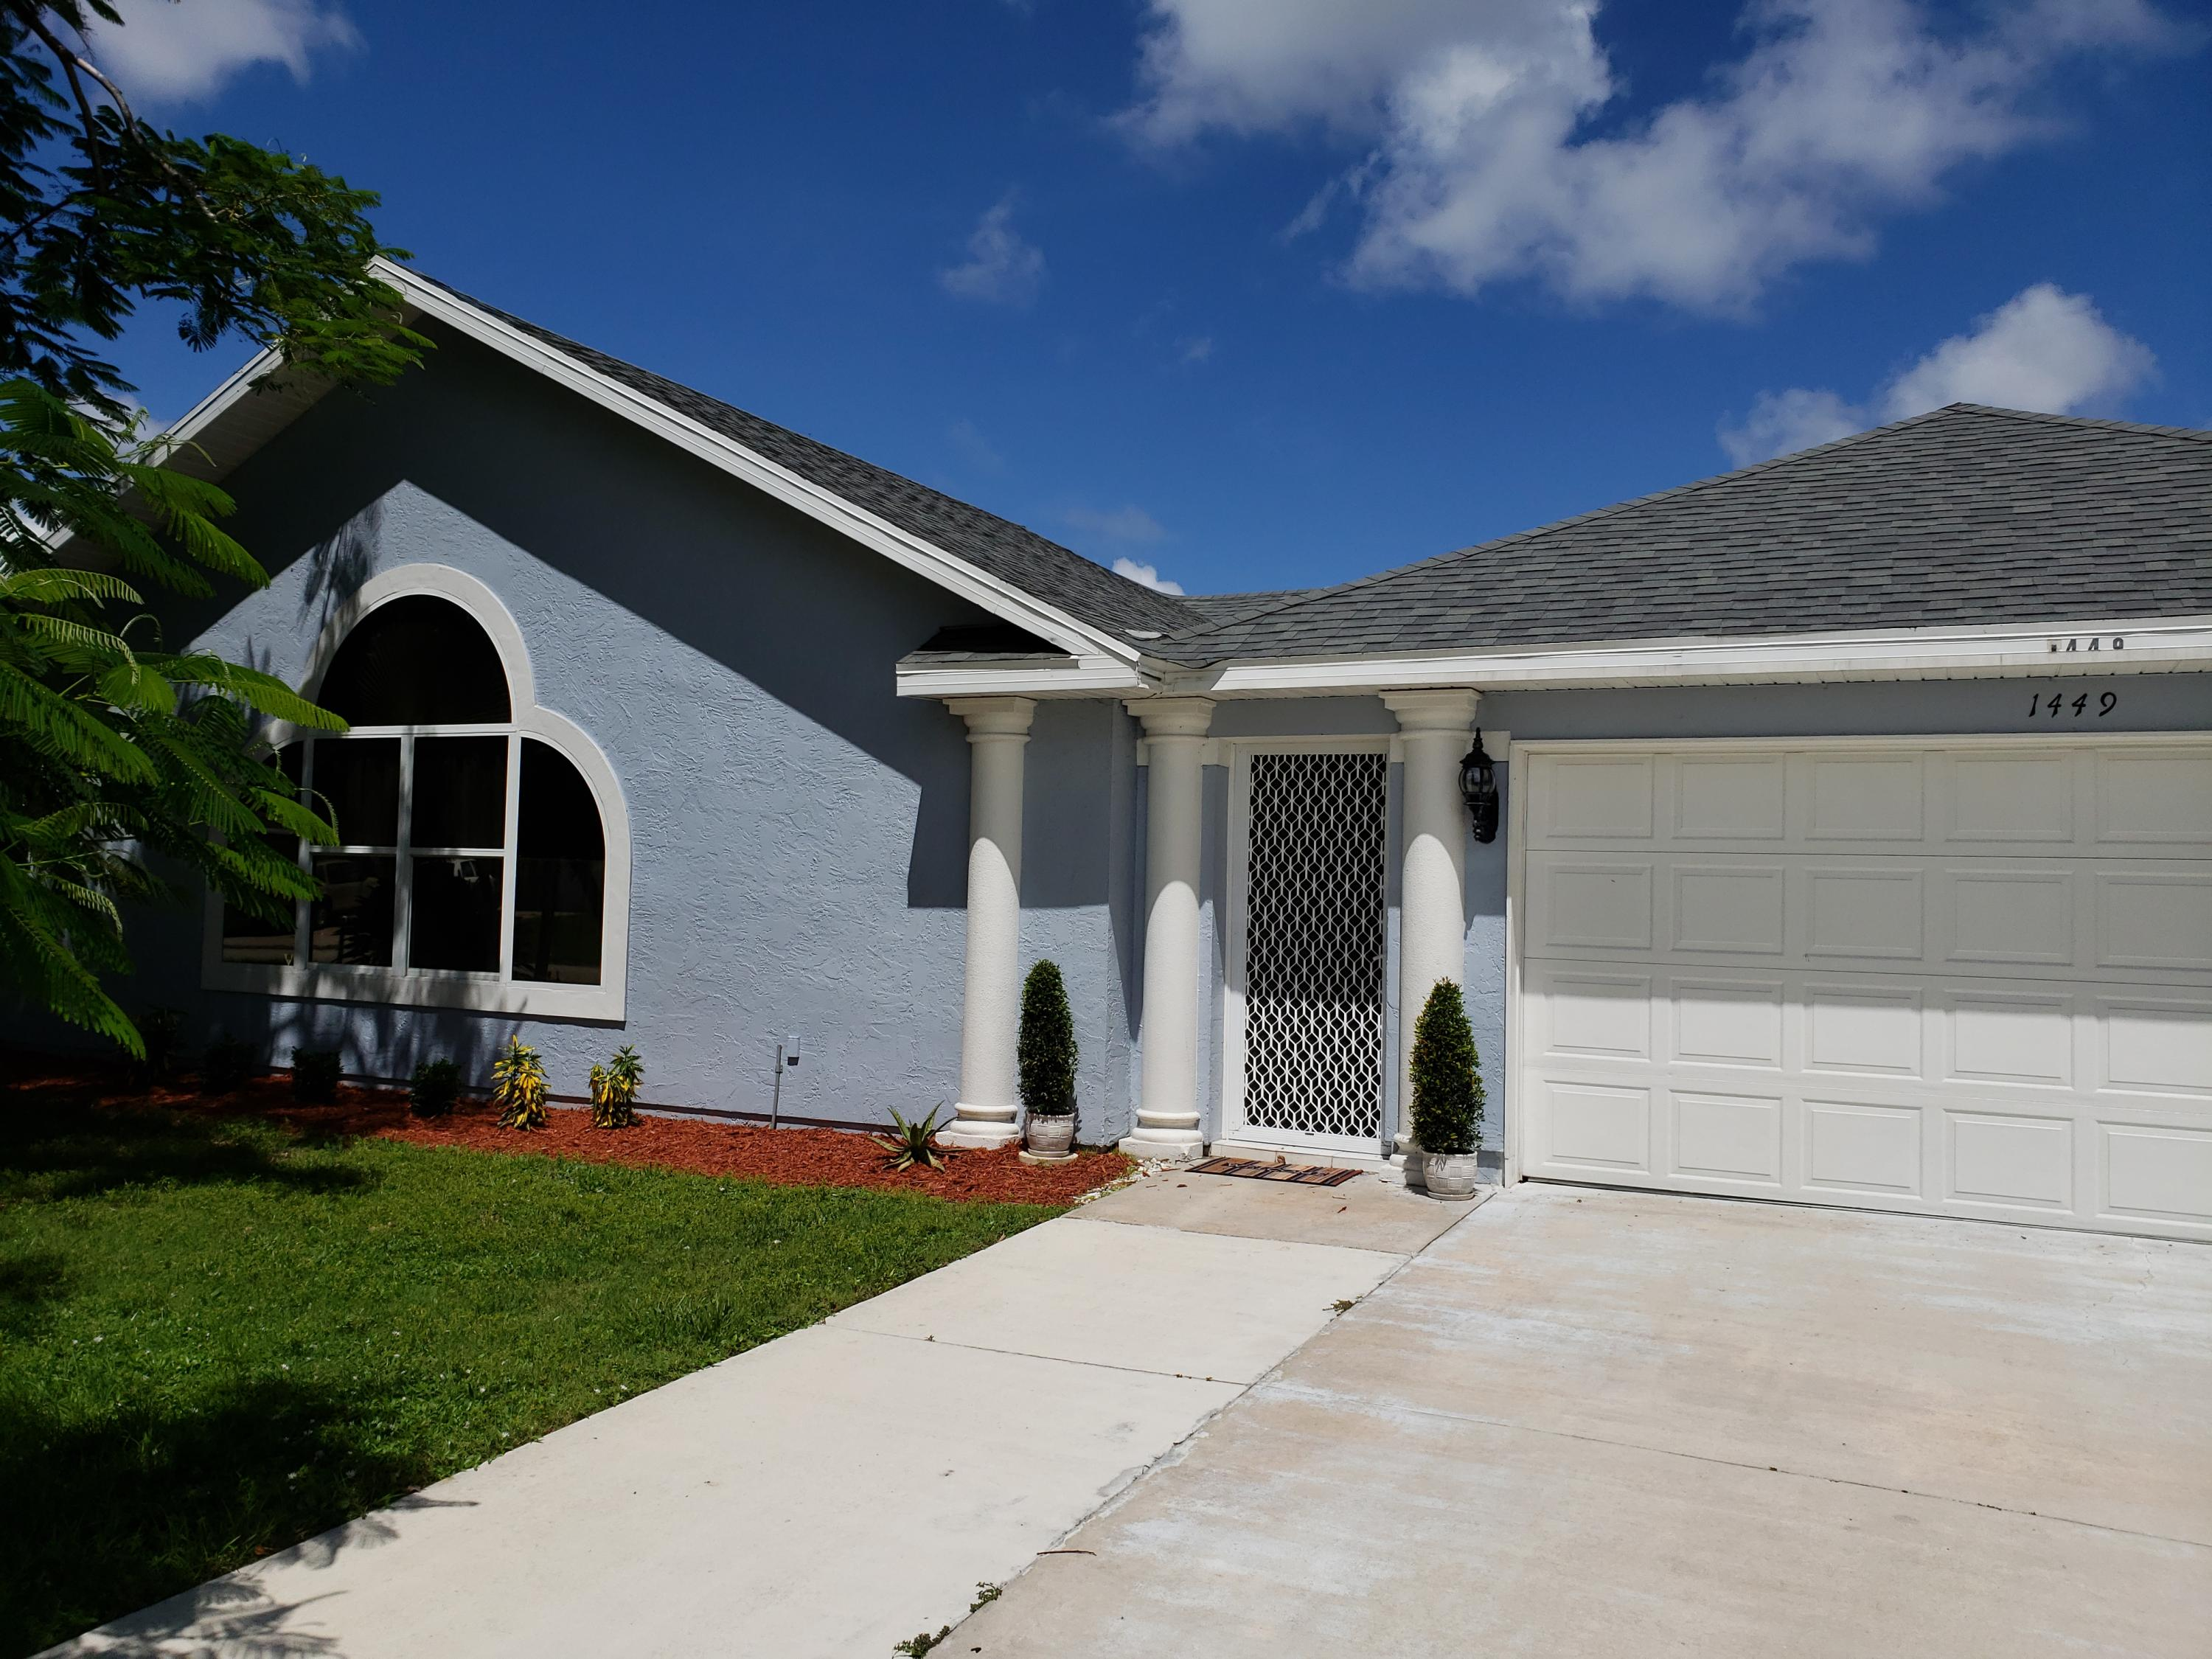 1449 Se Marisol Lane, Port Saint Lucie, FL 34952